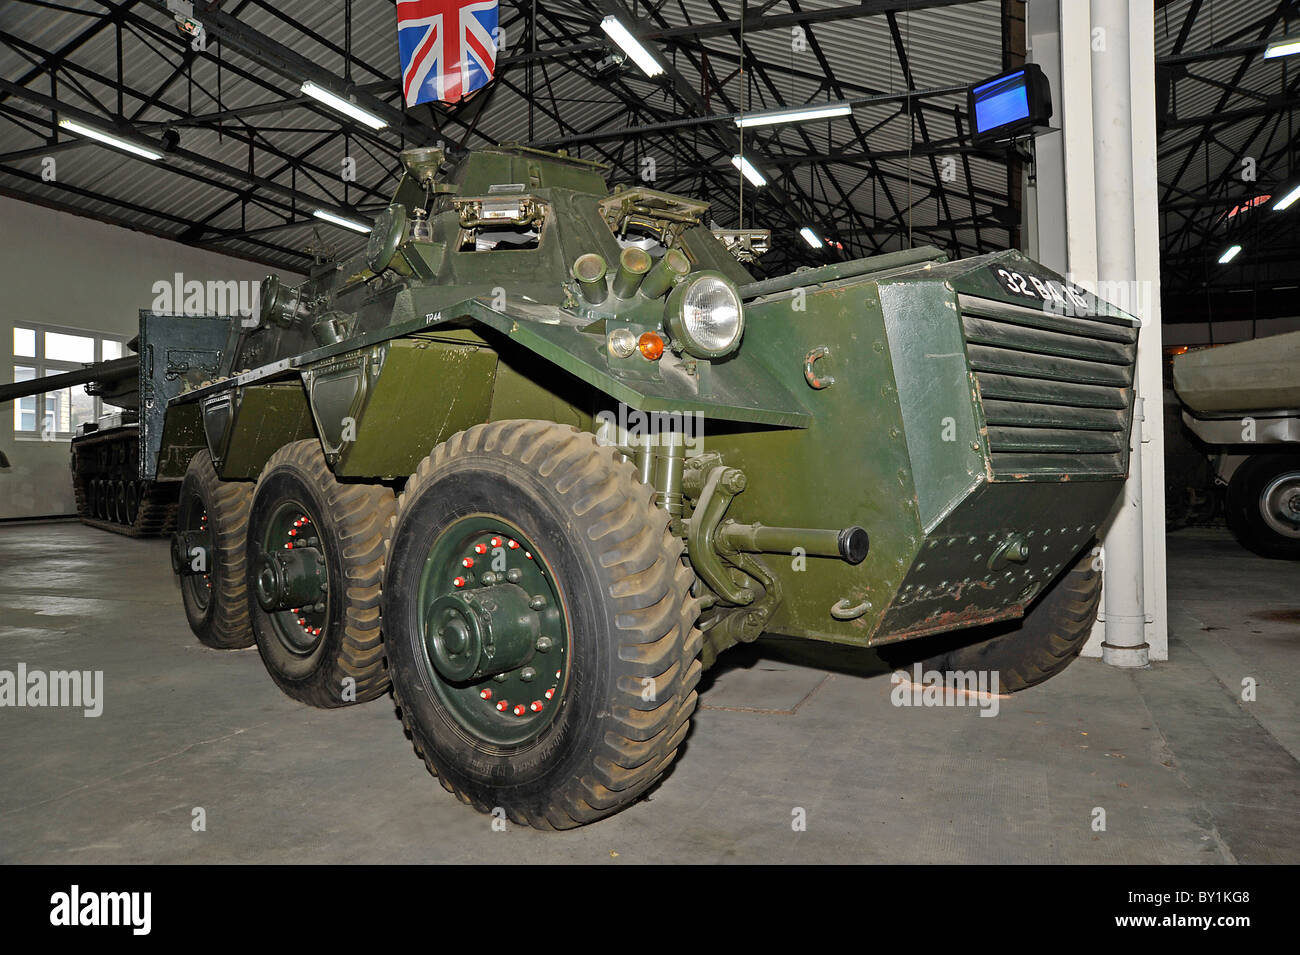 British army Saracen troop carrier on display at the tank